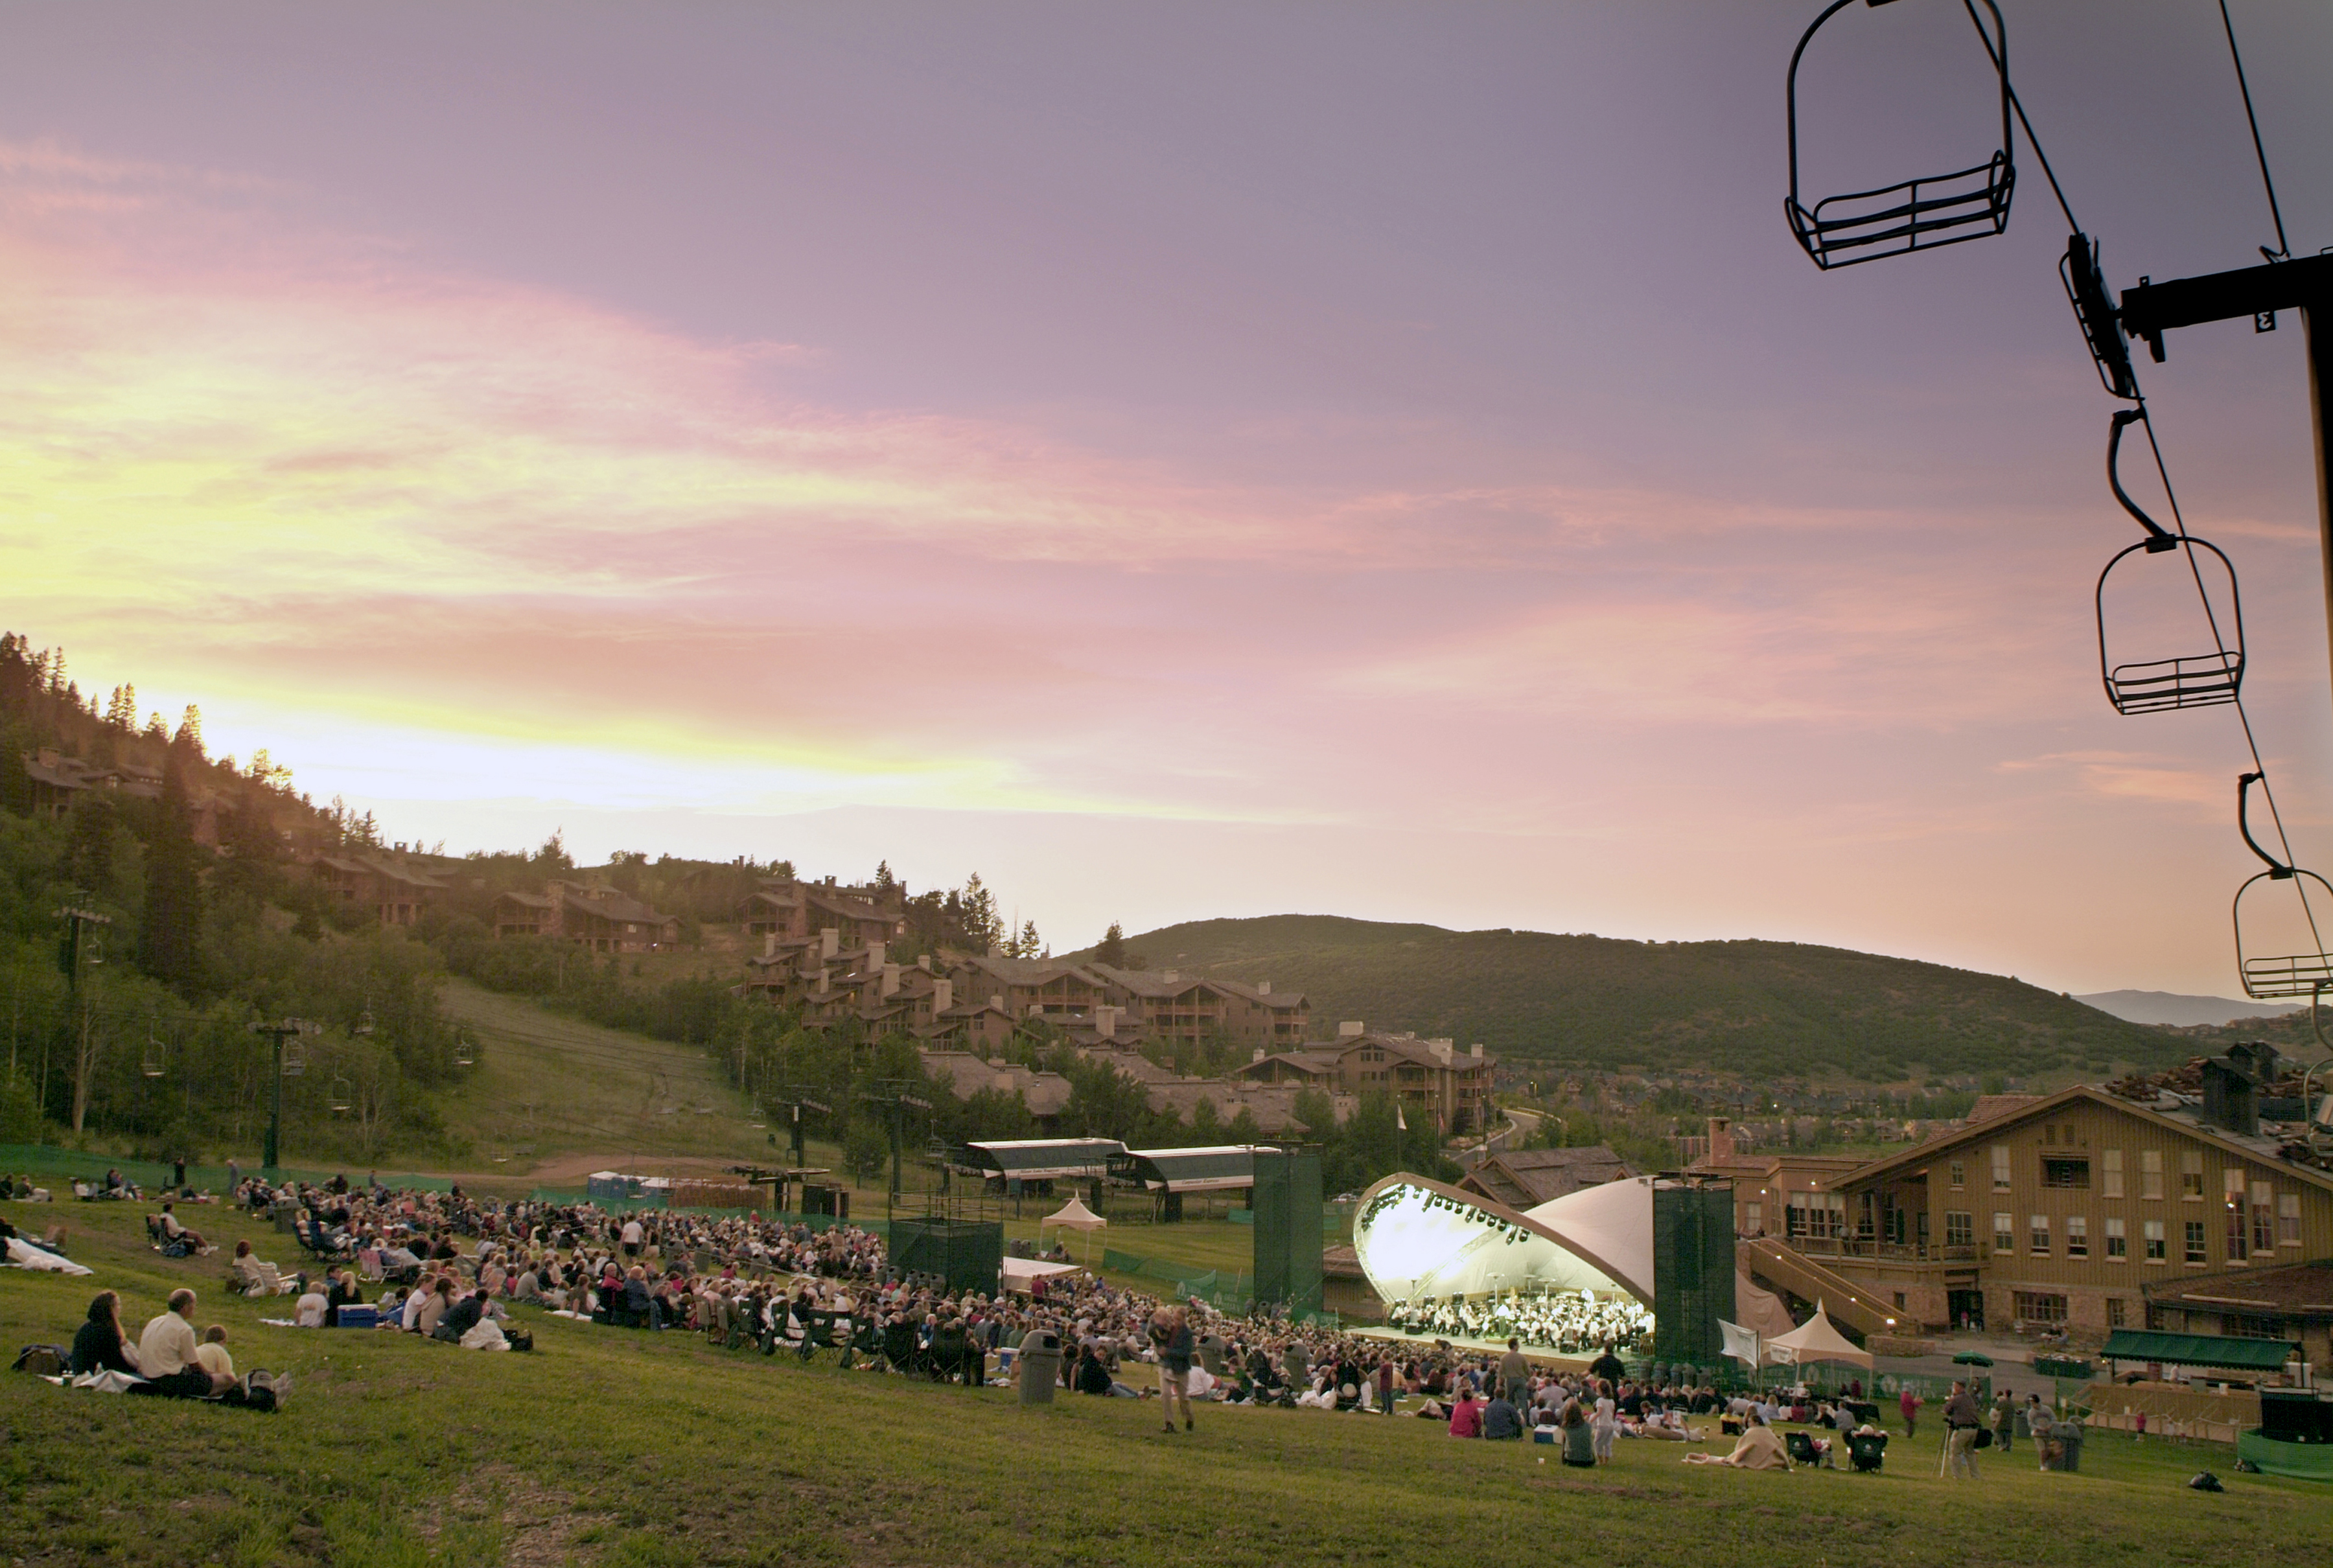 248 Deer Valleys Snow Park Outdoor Amphitheater